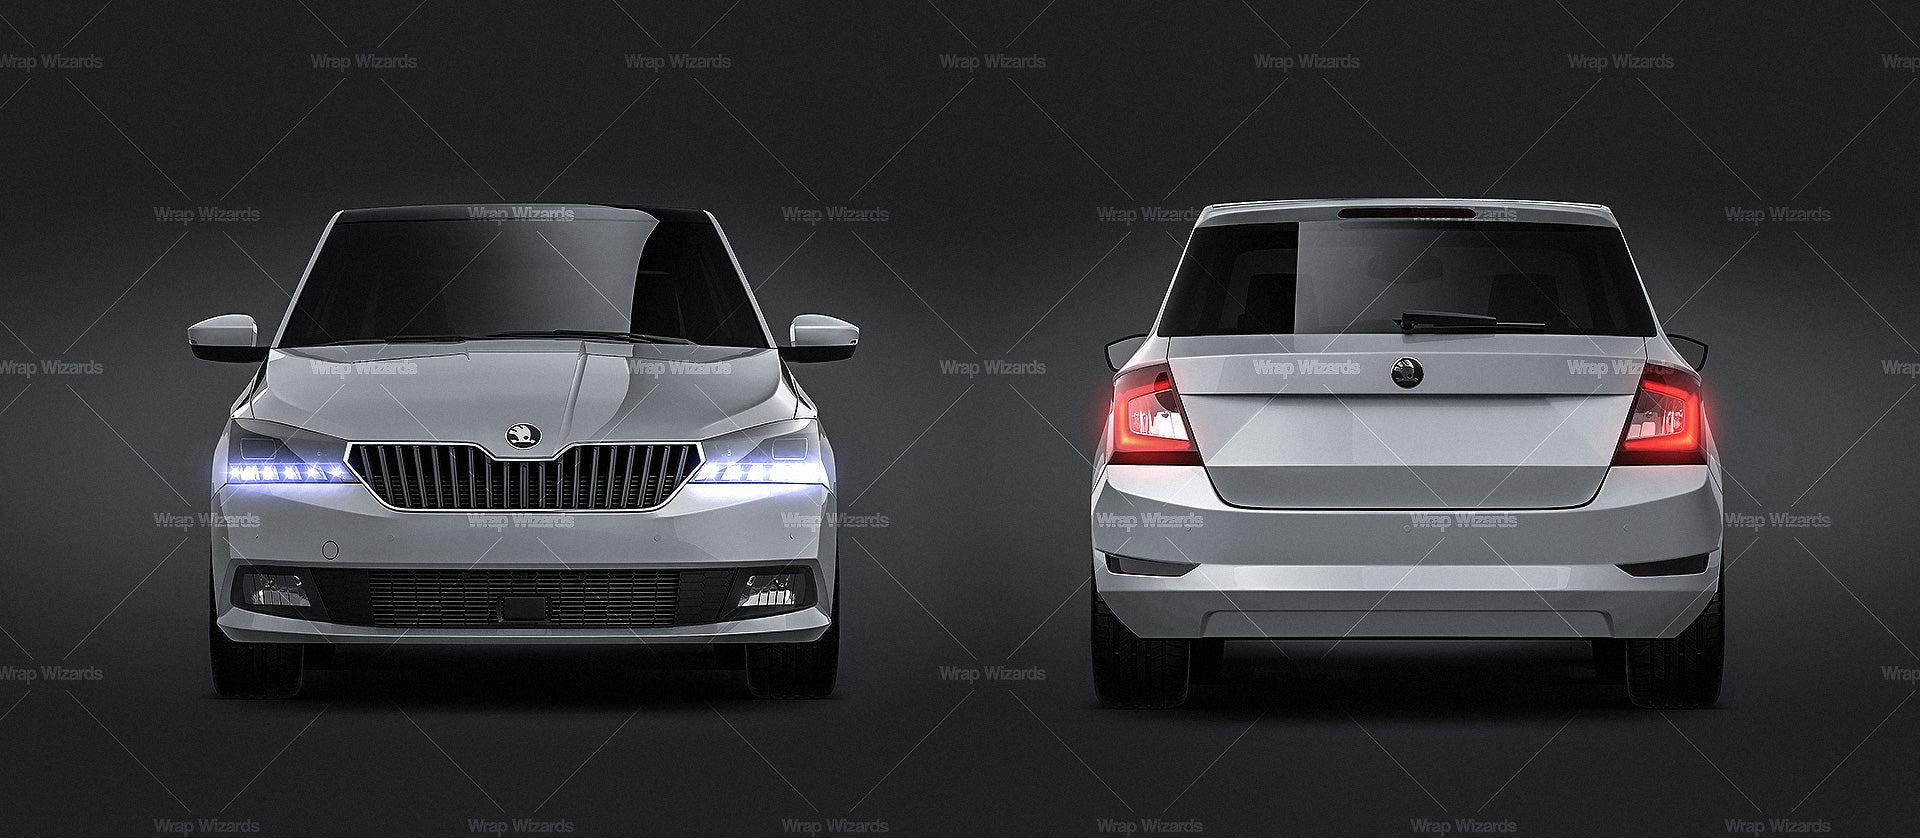 Skoda Fabia 2019 all sides Car Mockup Template.psd